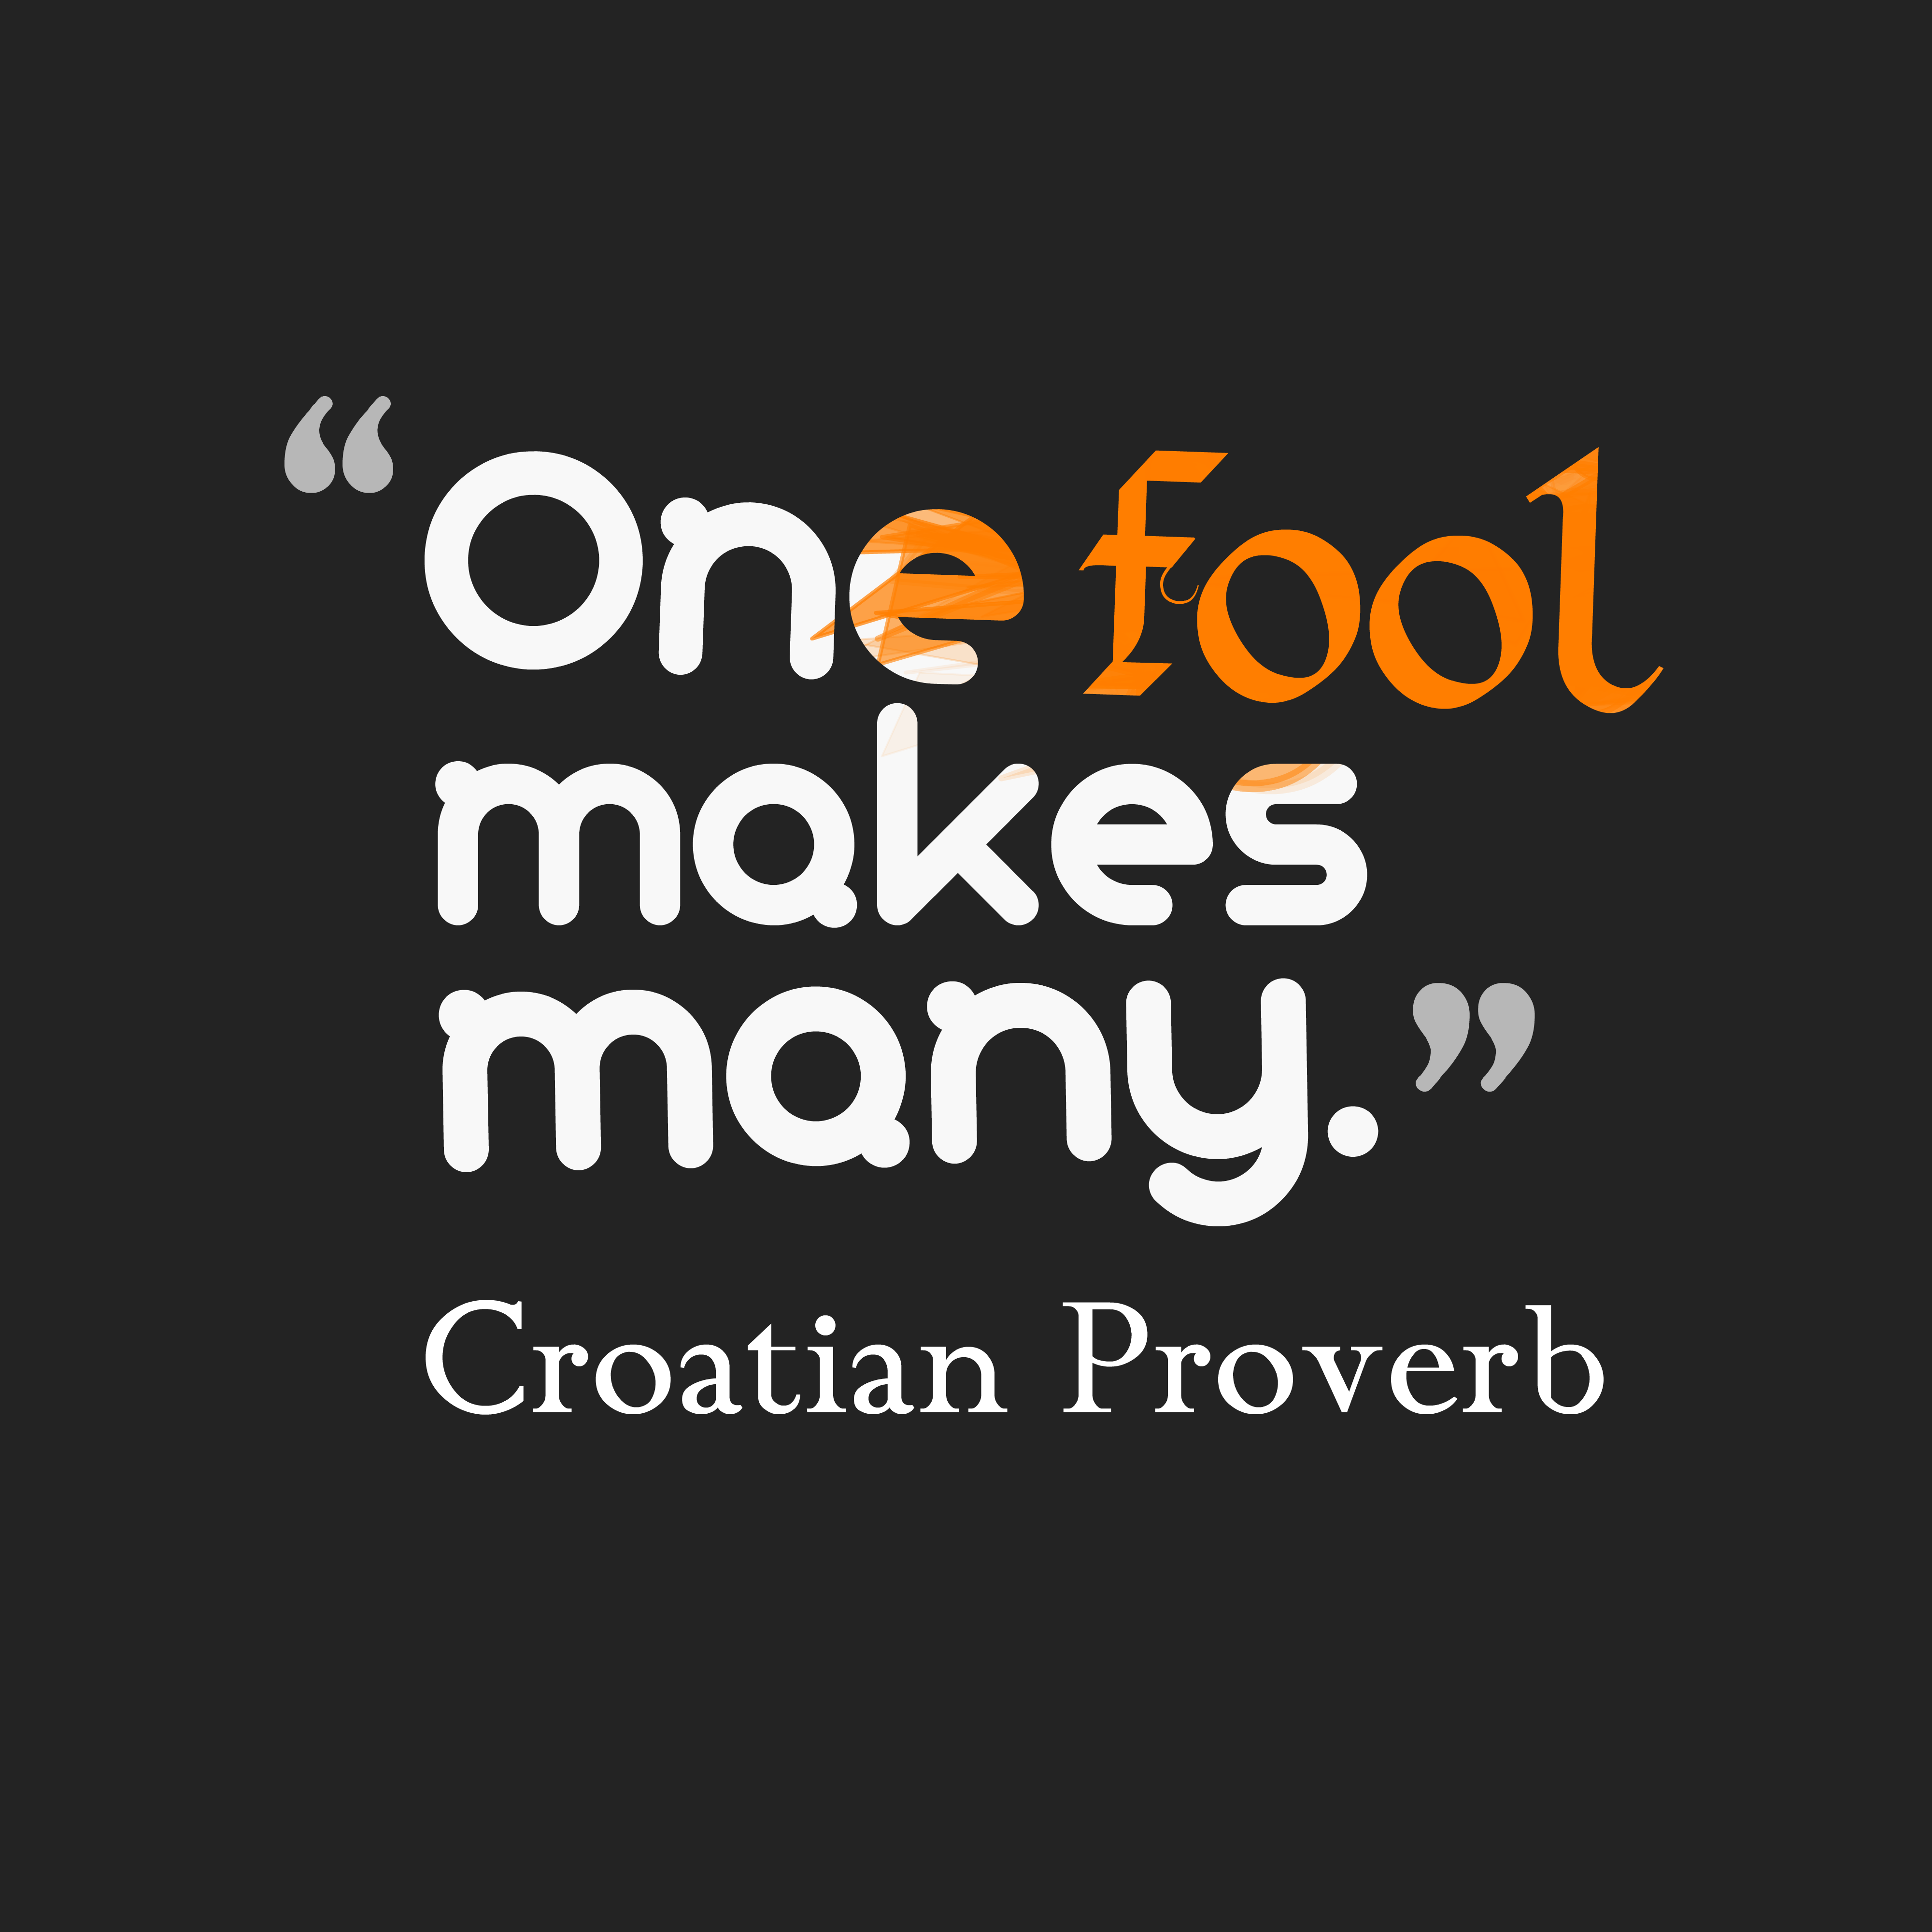 Quotes image of One fool makes many.